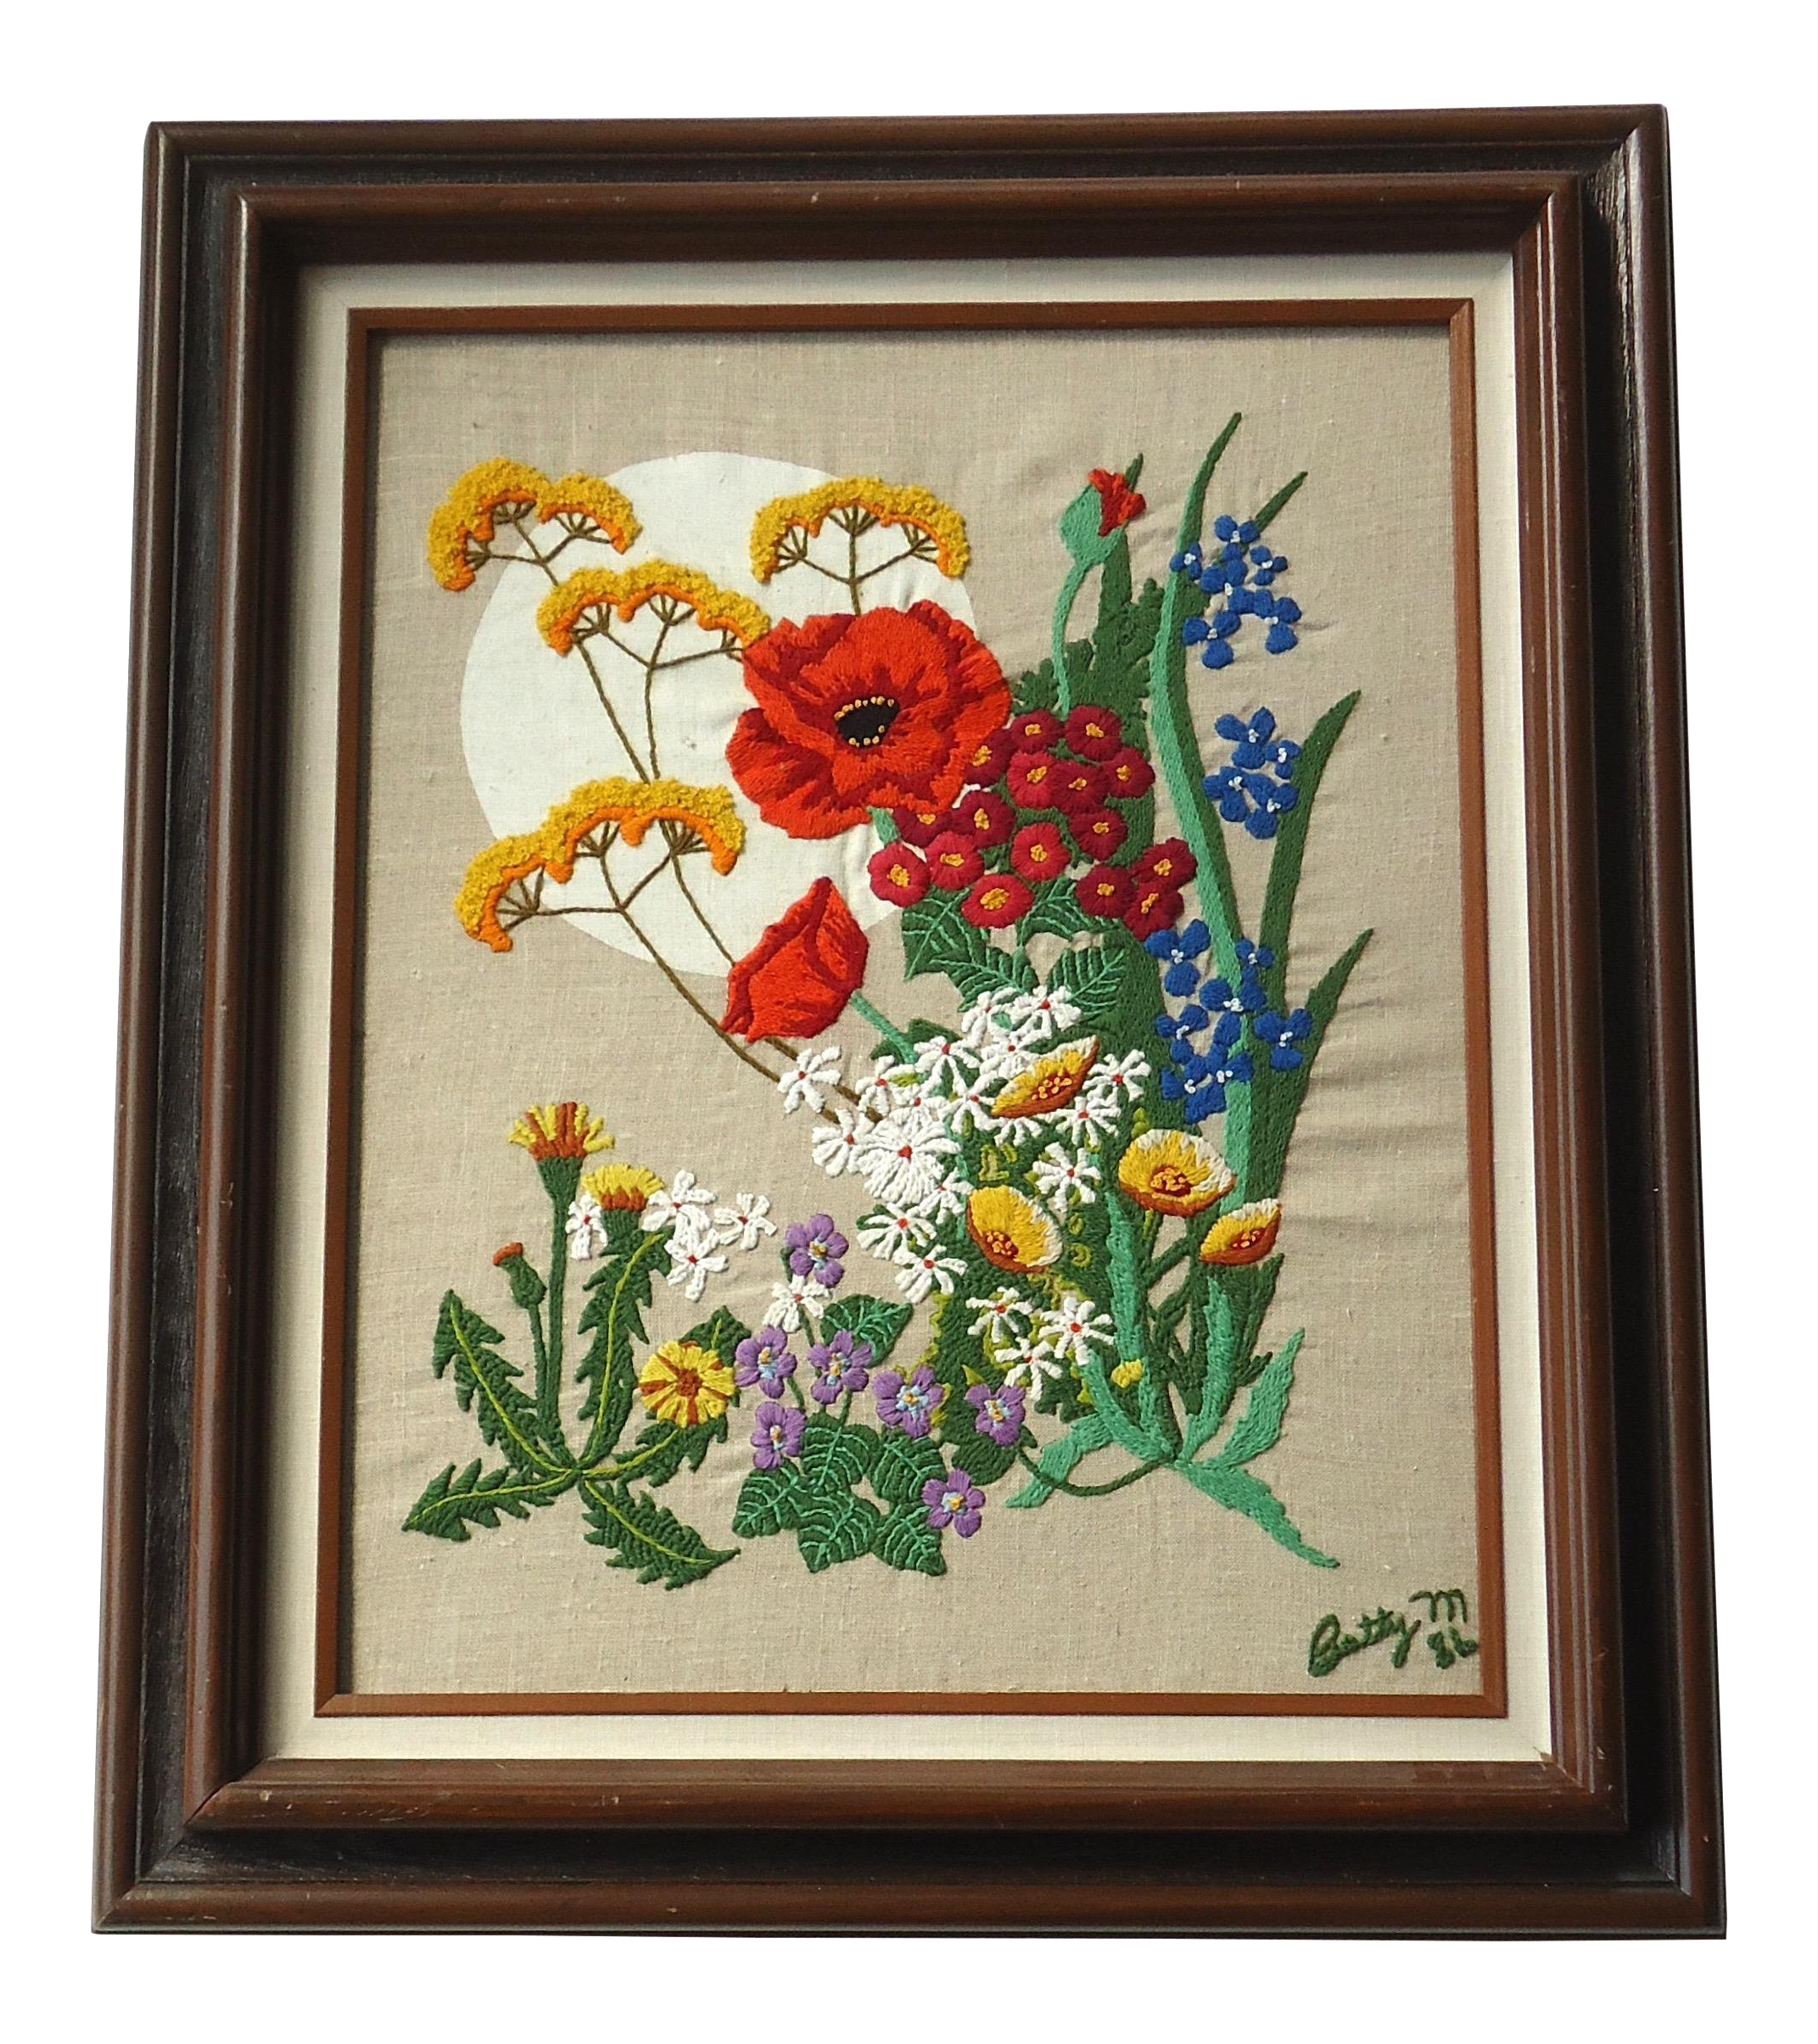 1980s Vintage Framed Floral Embroidery Flowers Textile Art Chairish